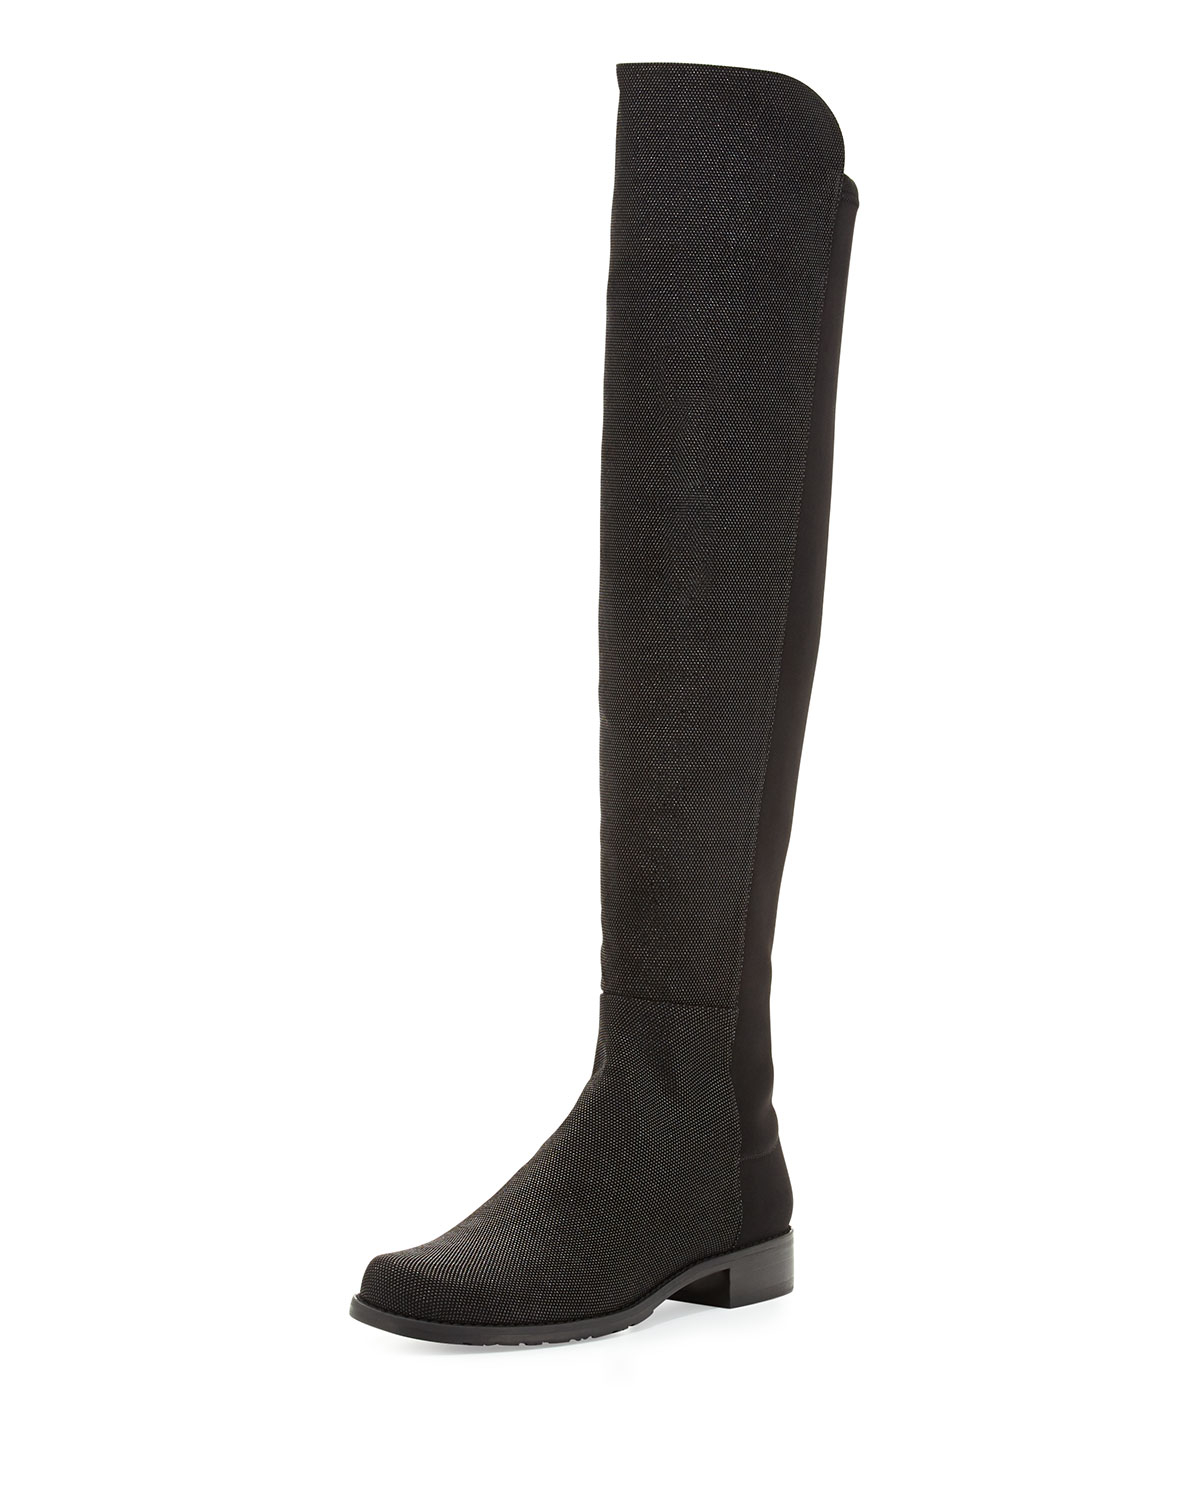 Stuart Weitzman Boots & Shoes. Stuart Weitzman boots and shoes are synonymous with fashionable footwear. Advocated by celebrities and supermodel powerhouses including Kate Moss and Gigi Hadid, you'll find the latest lines and an array of styles here at Daniel Footwear.